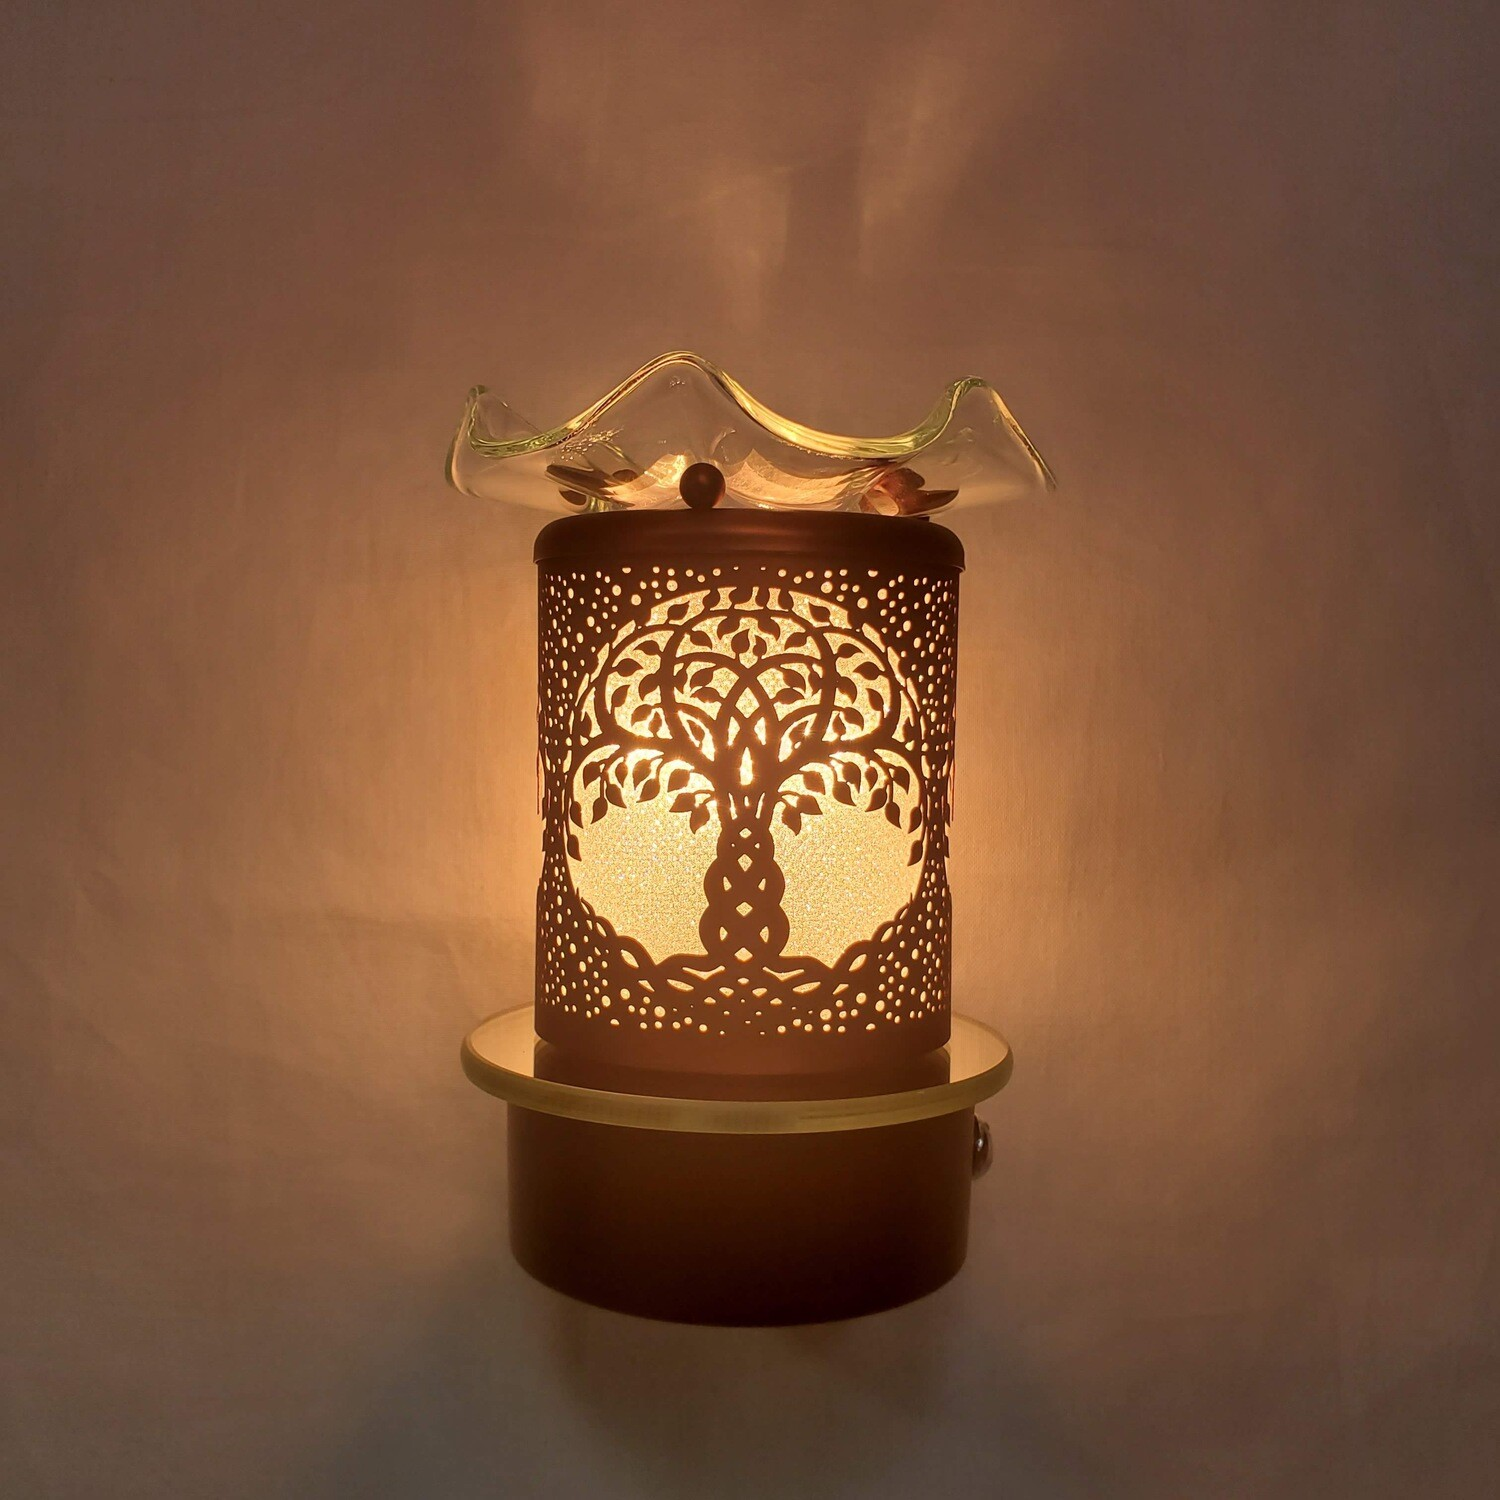 TREE OF LIFE TOUCH PLUG-IN LAMP